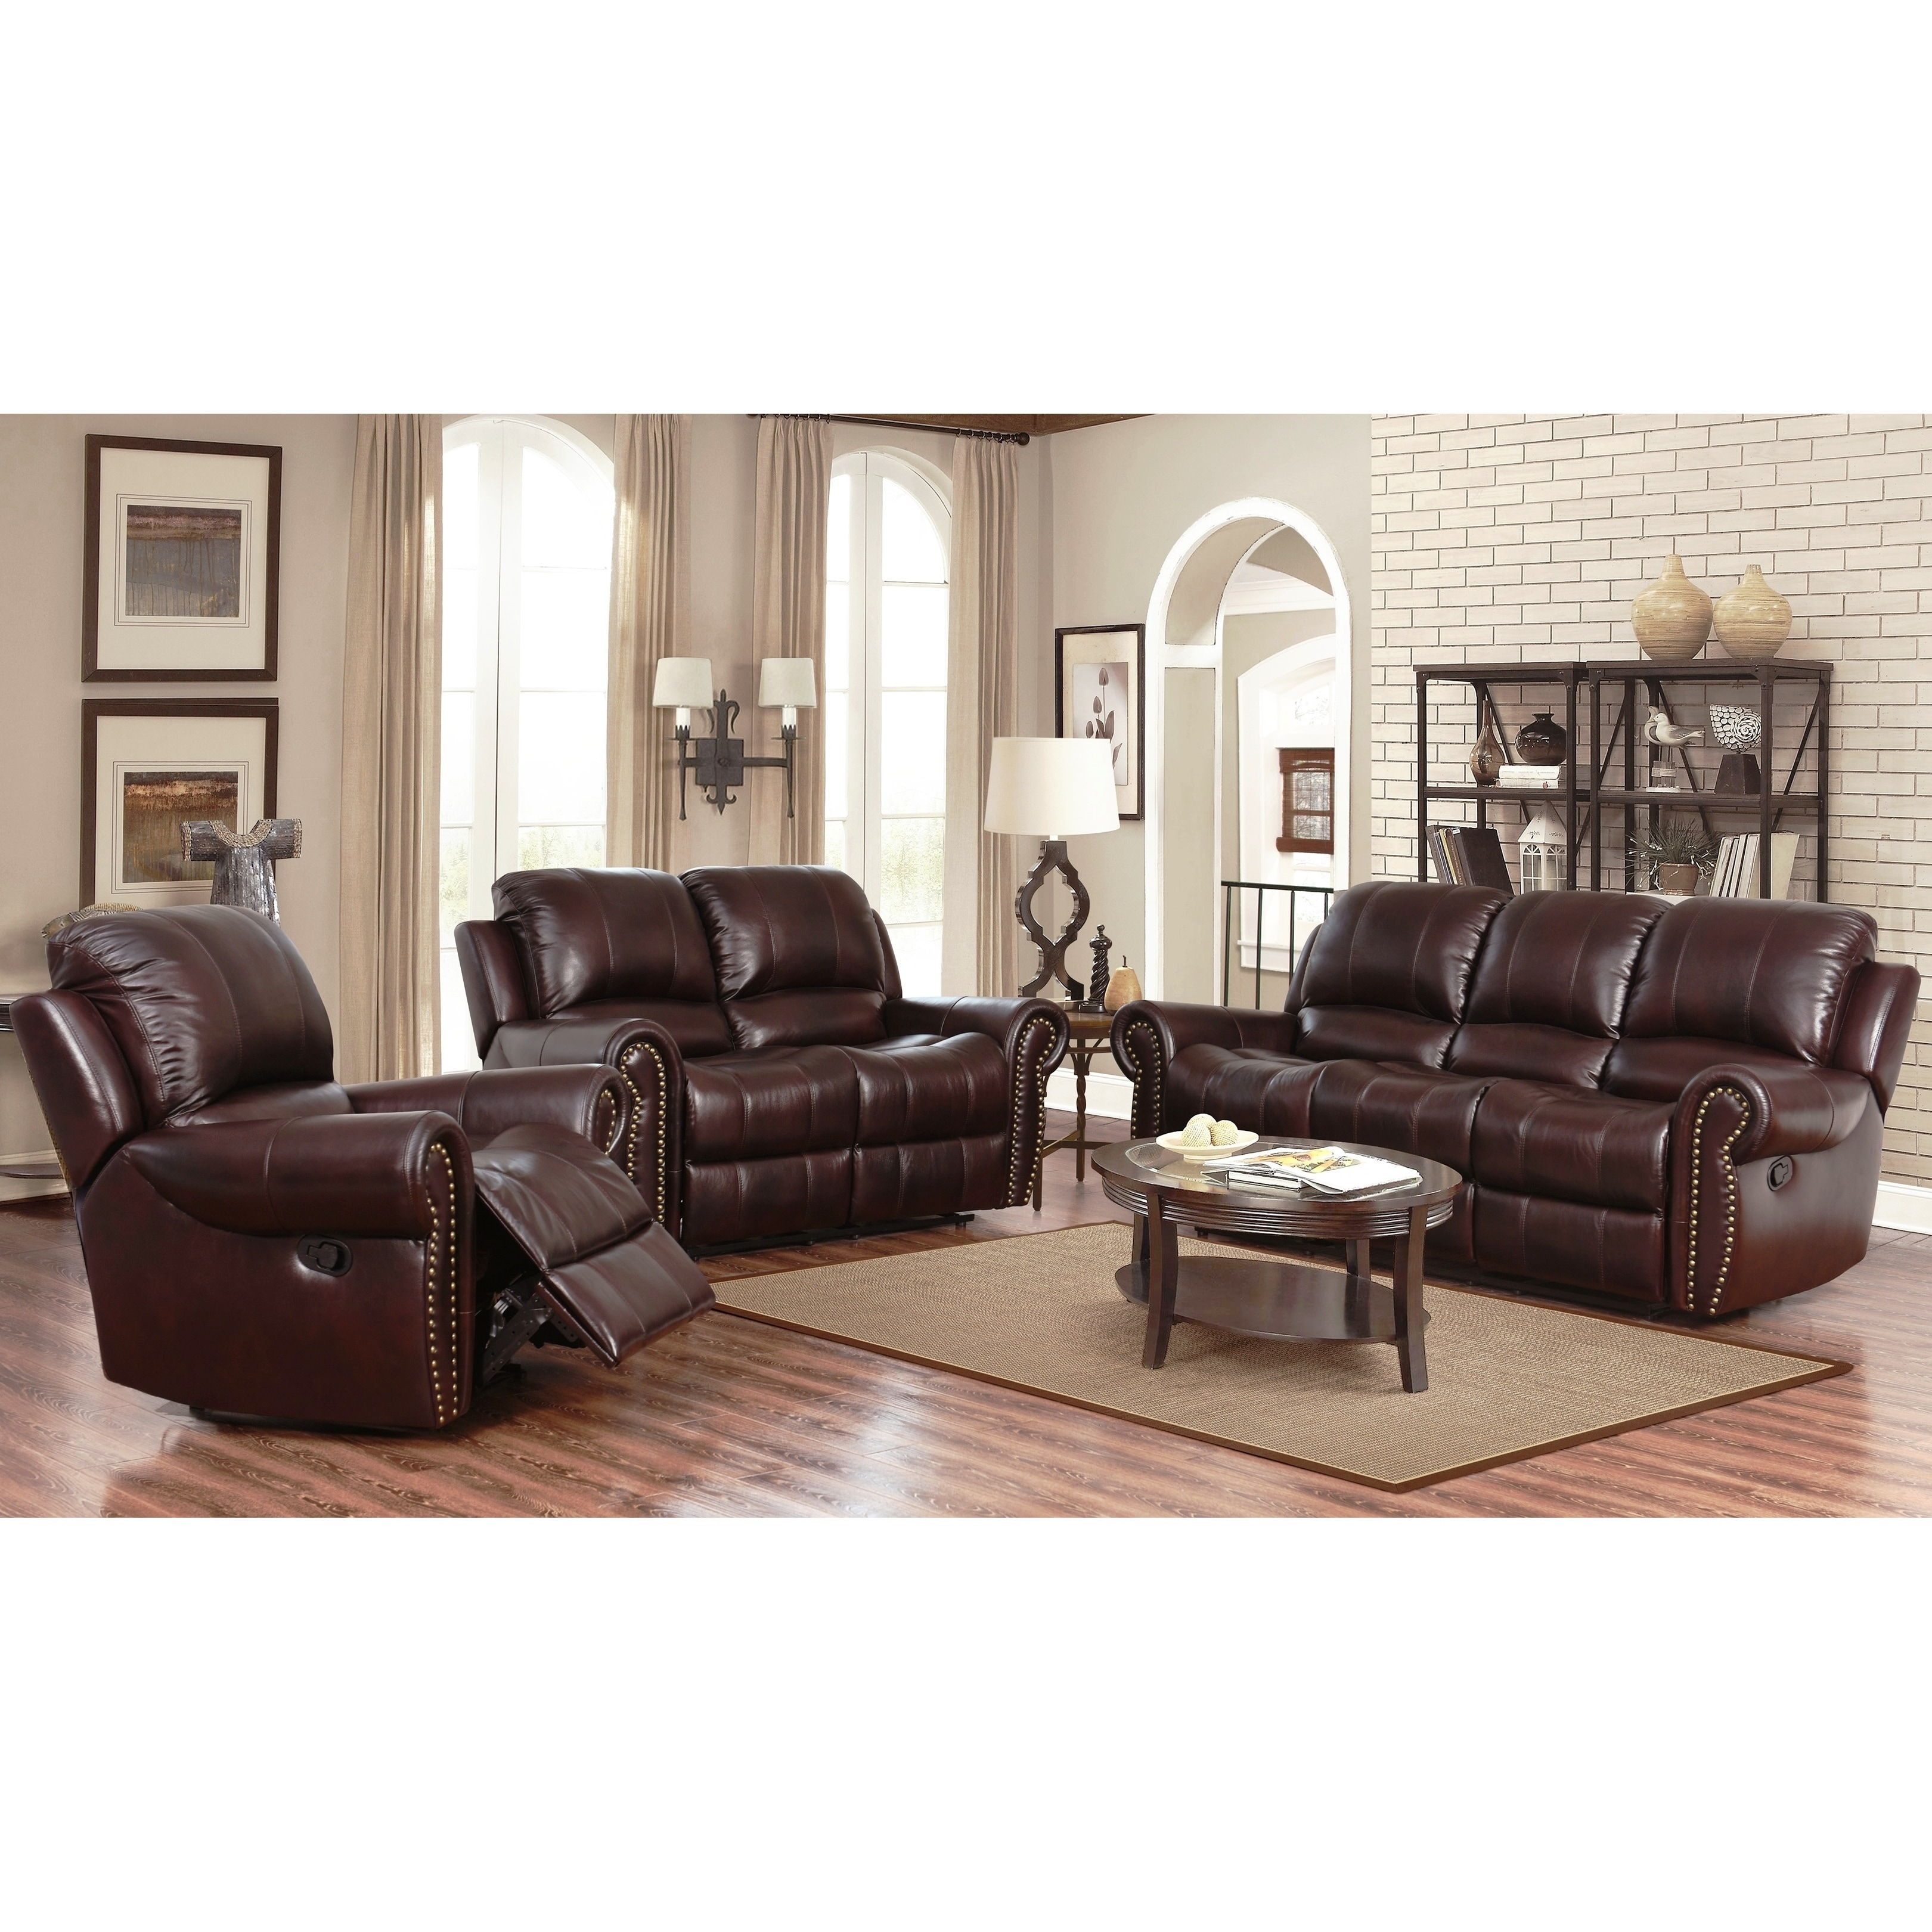 Recliner Sofa Sets: Leather Recliner Sofa Set Deals Red Leather Reclining Sofa